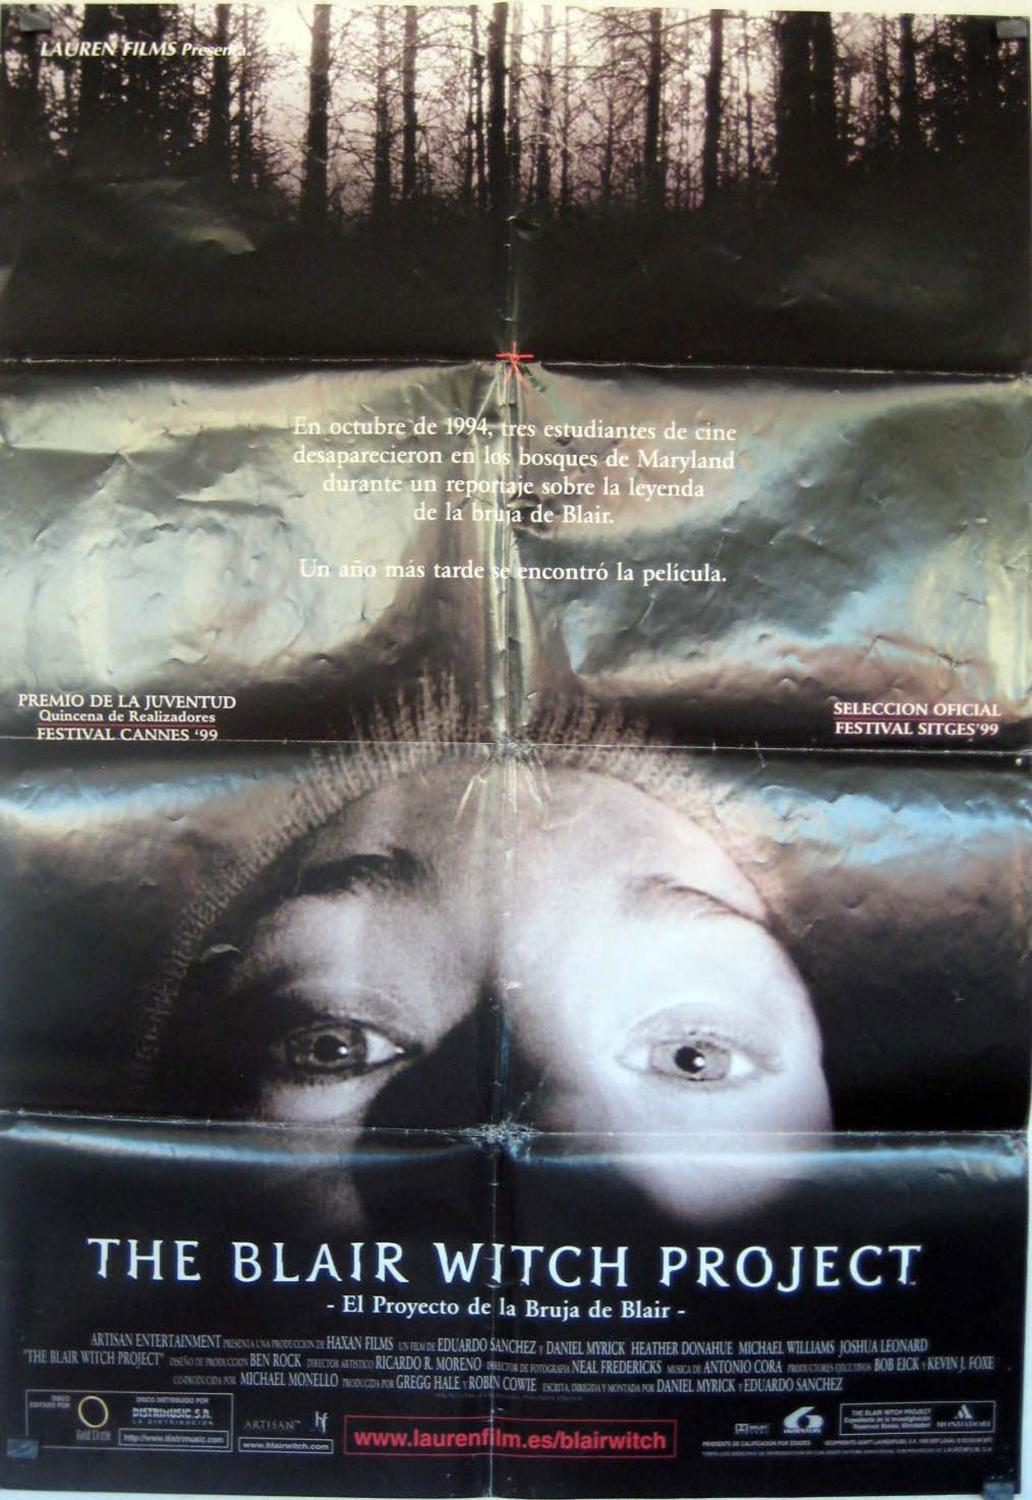 THE BLAIR WITCH PROJECT MOVIE POSTER/THE BLAIR WITCH PROJECT/POSTER